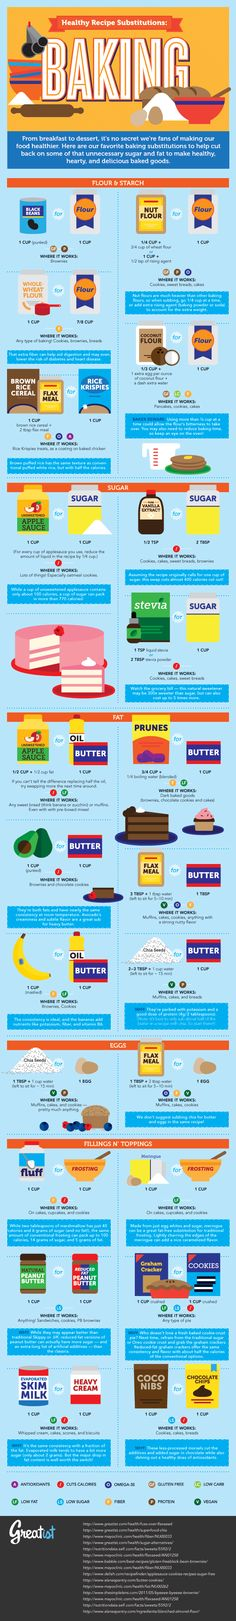 Substitutions for healthier baking